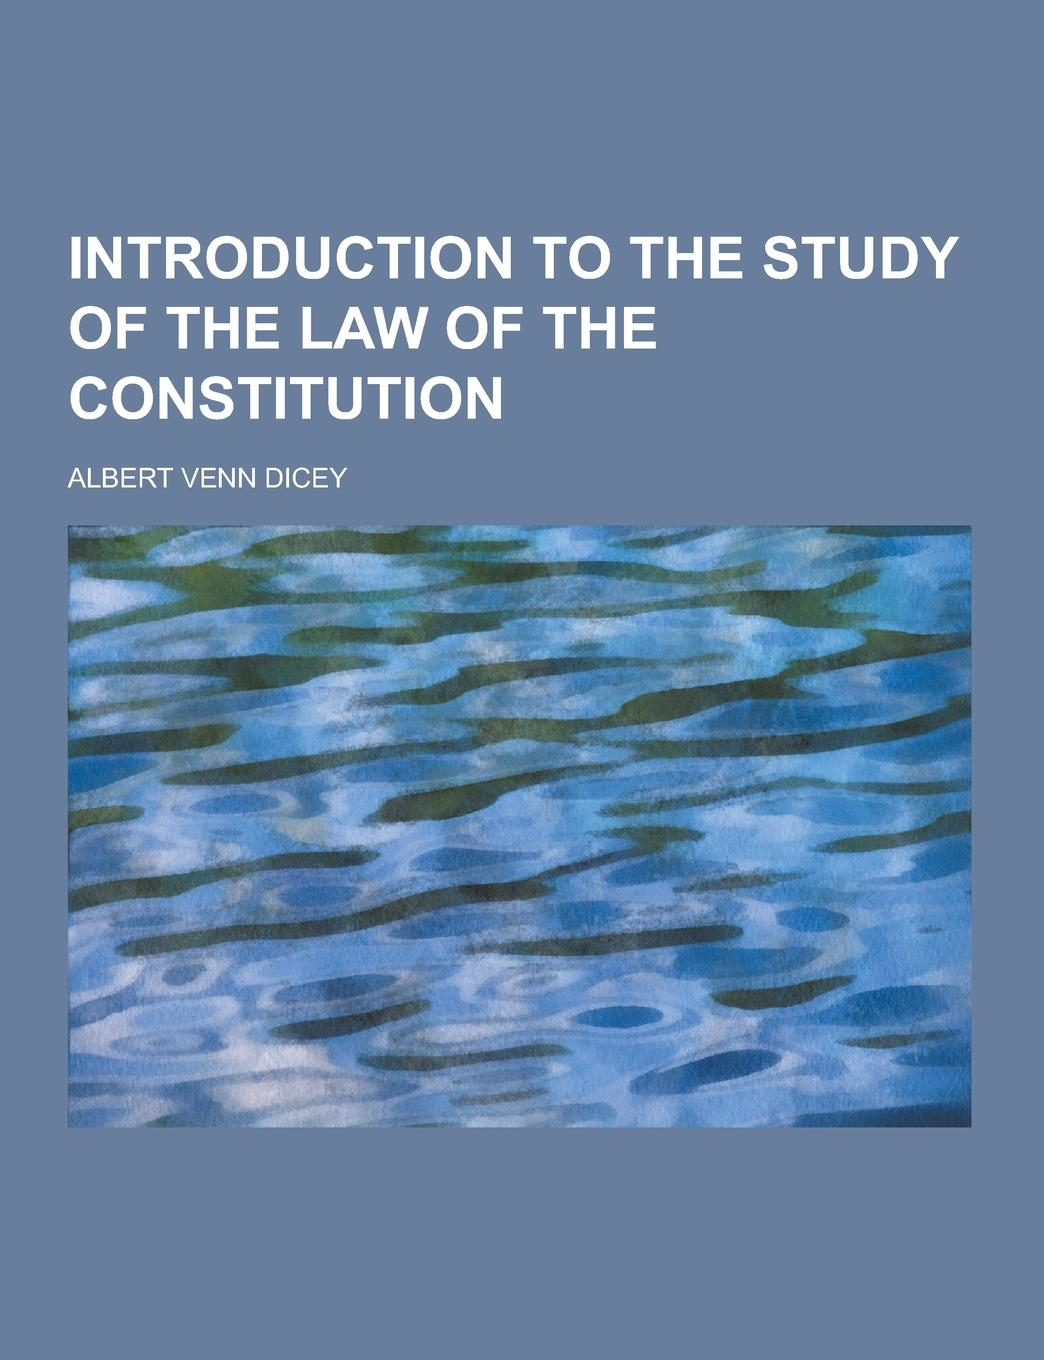 Albert Venn Dicey Introduction to the Study of the Law of the Constitution nicholas sunday constitutional law constitutionalism and democracy